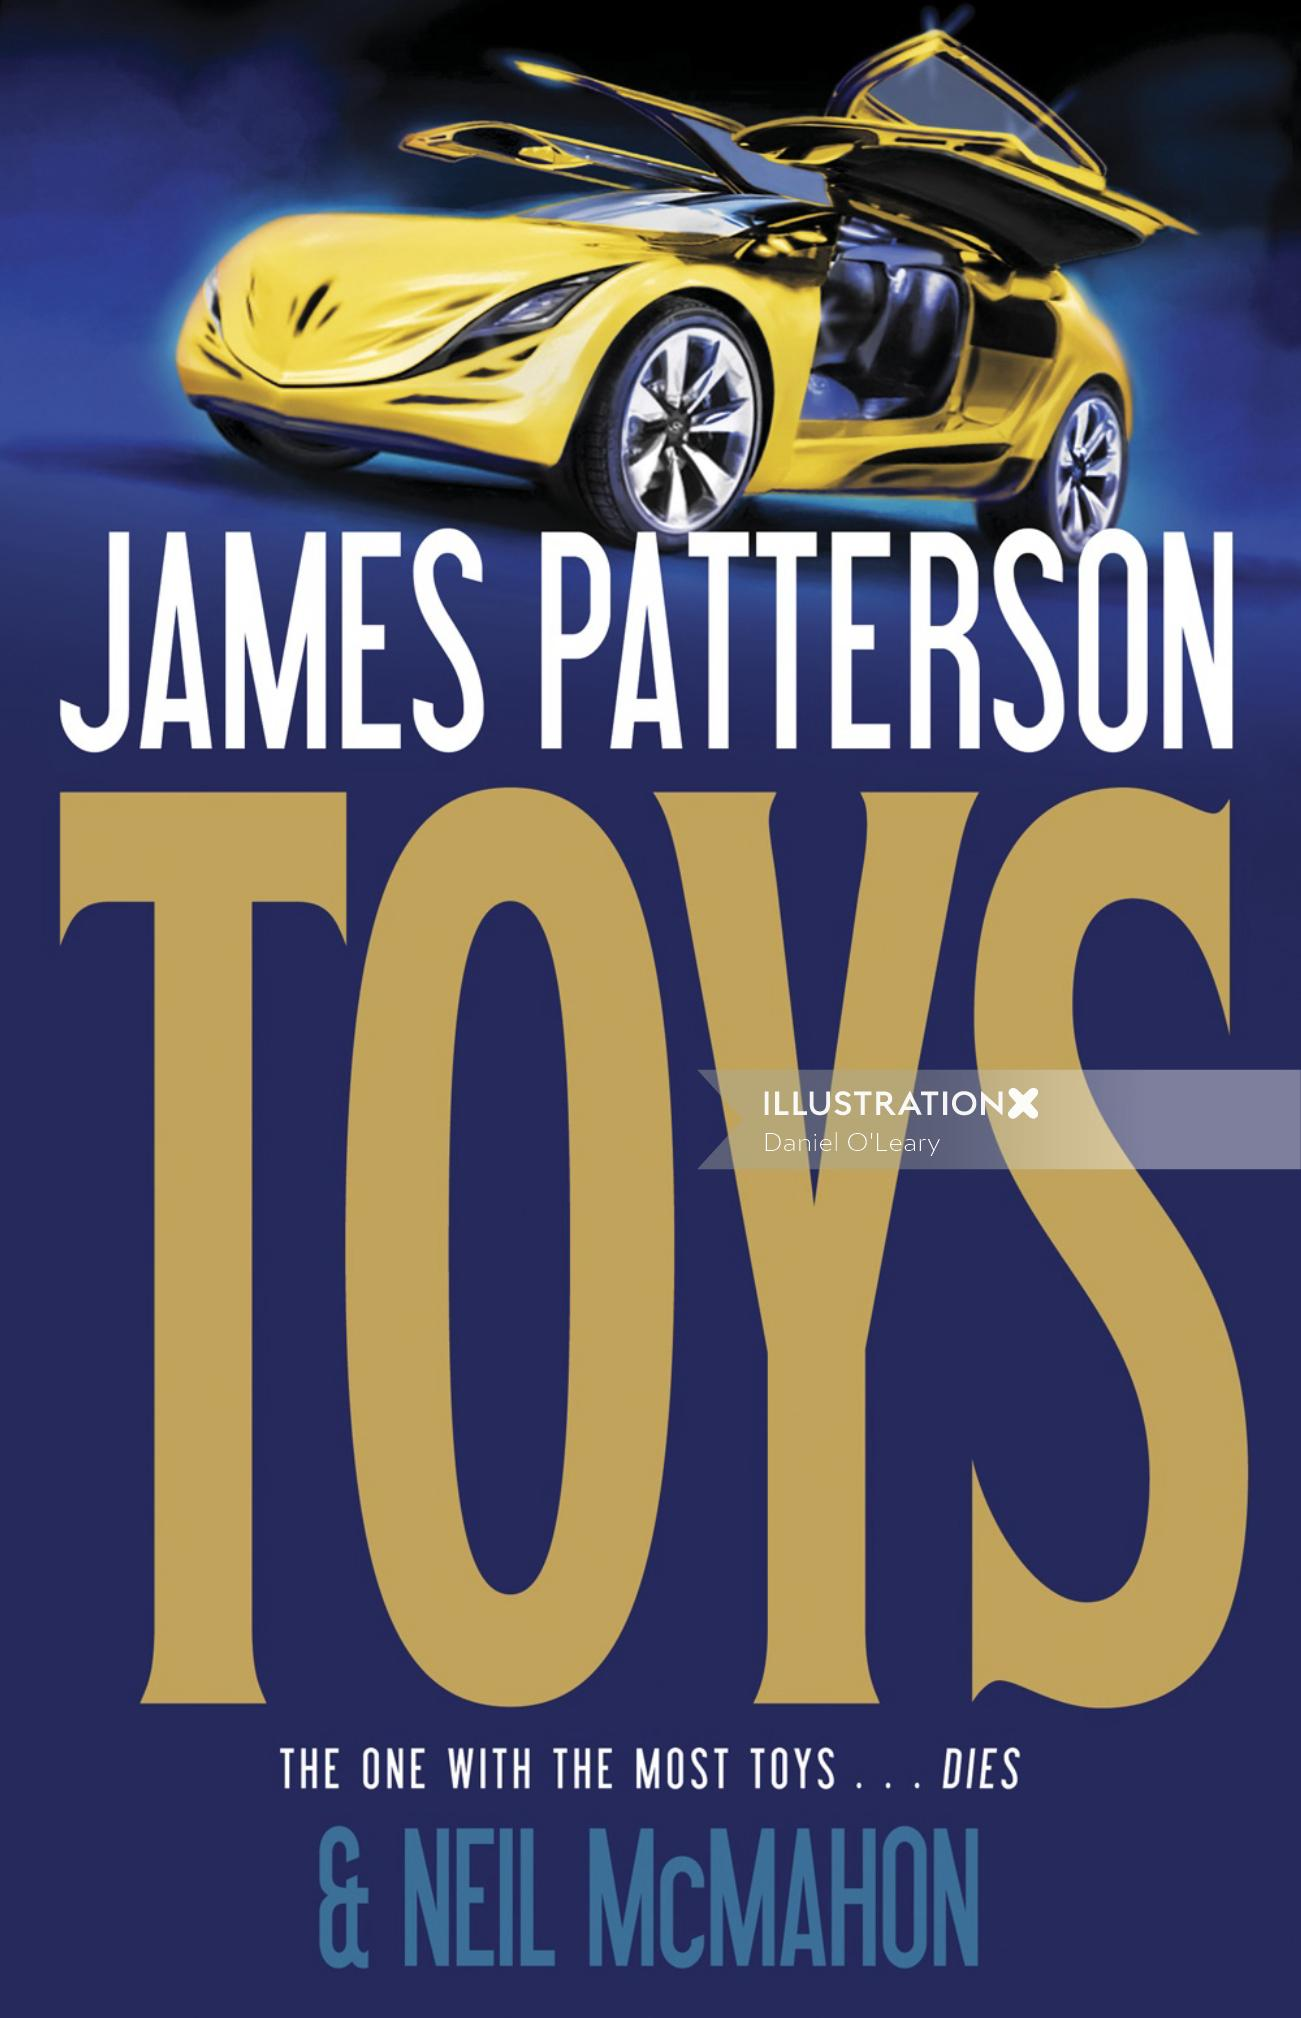 Book cover design of toys